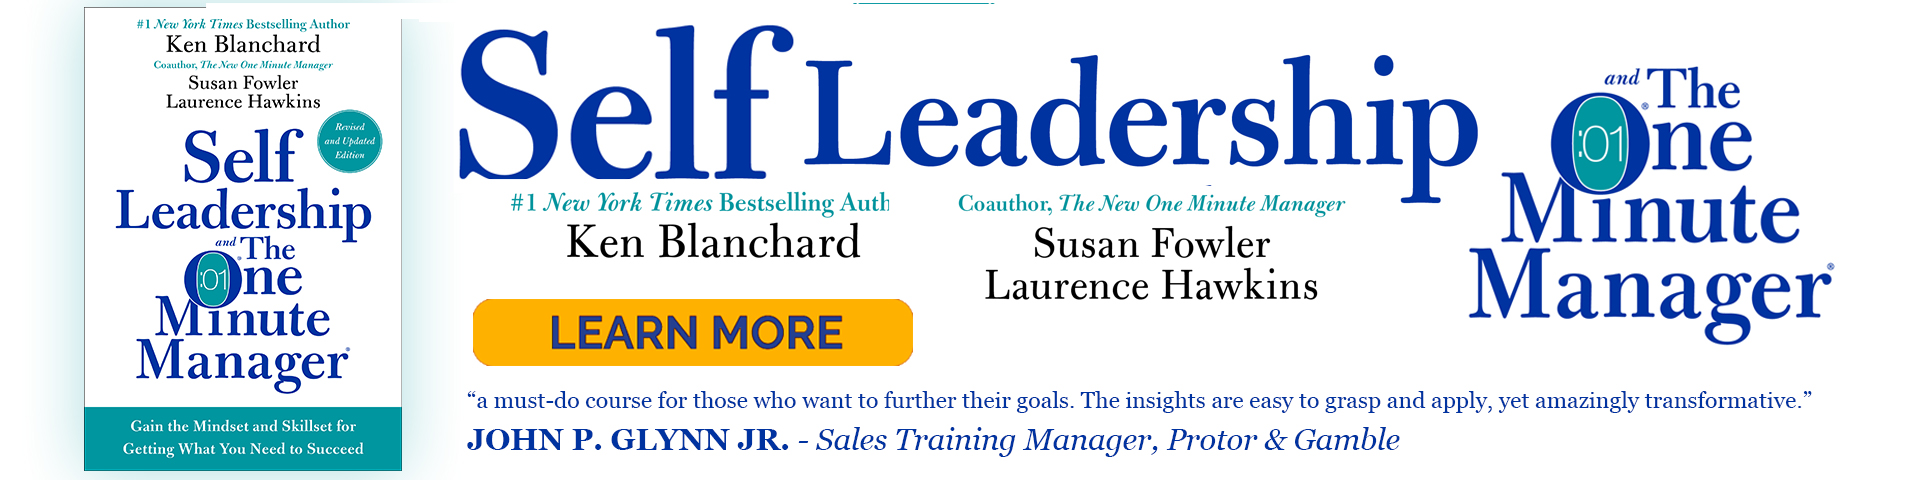 Self Leadership and the One Minute Manager Revised Edition by Susan Fowler